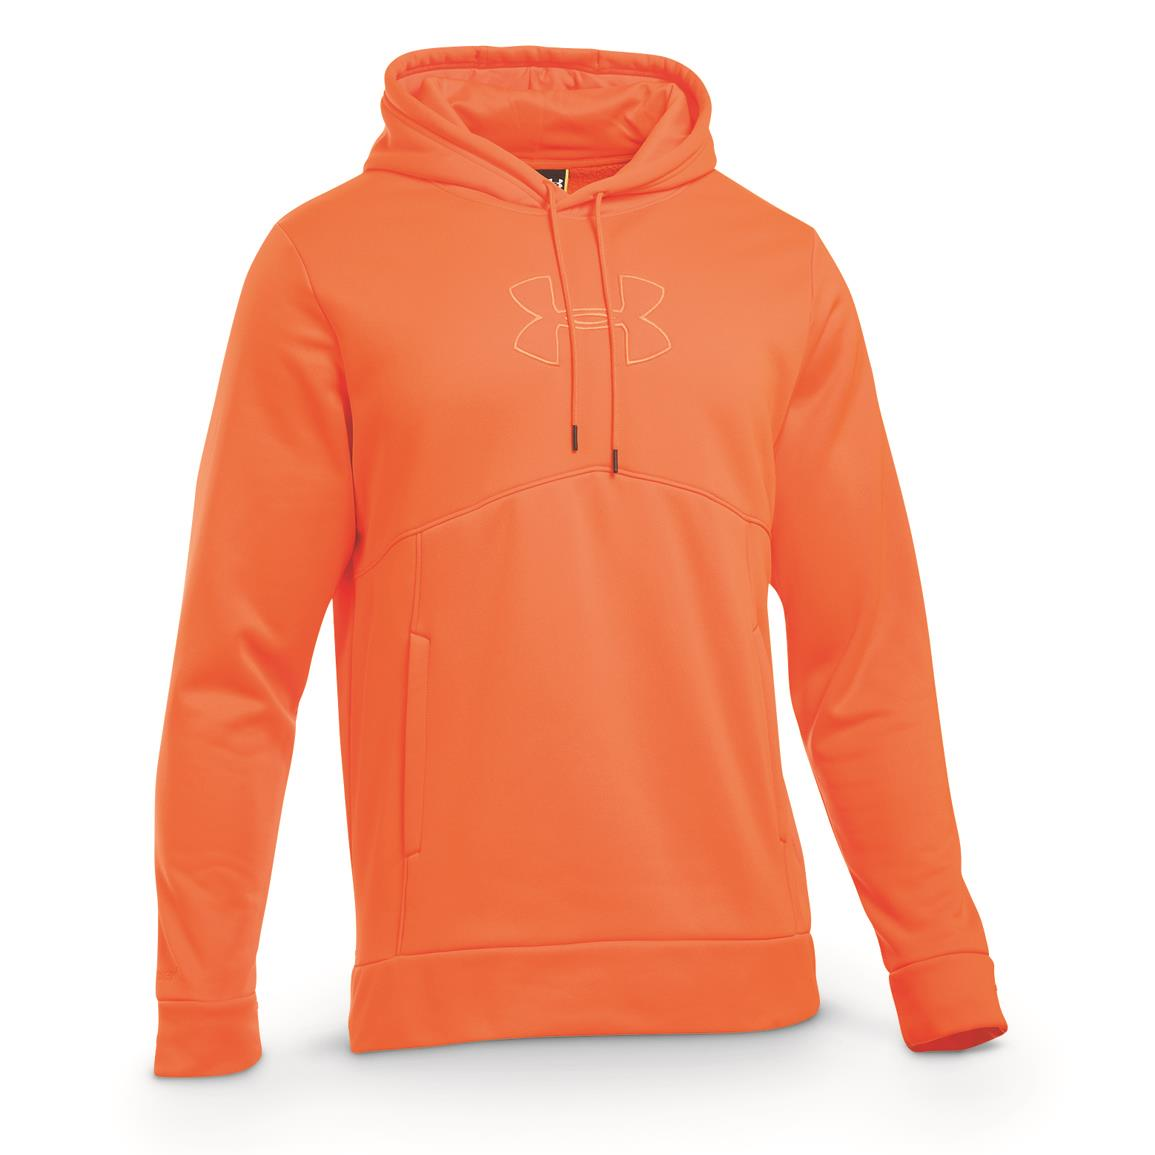 Under Armour Men's Icon Caliber Hoodie, Blaze Orange